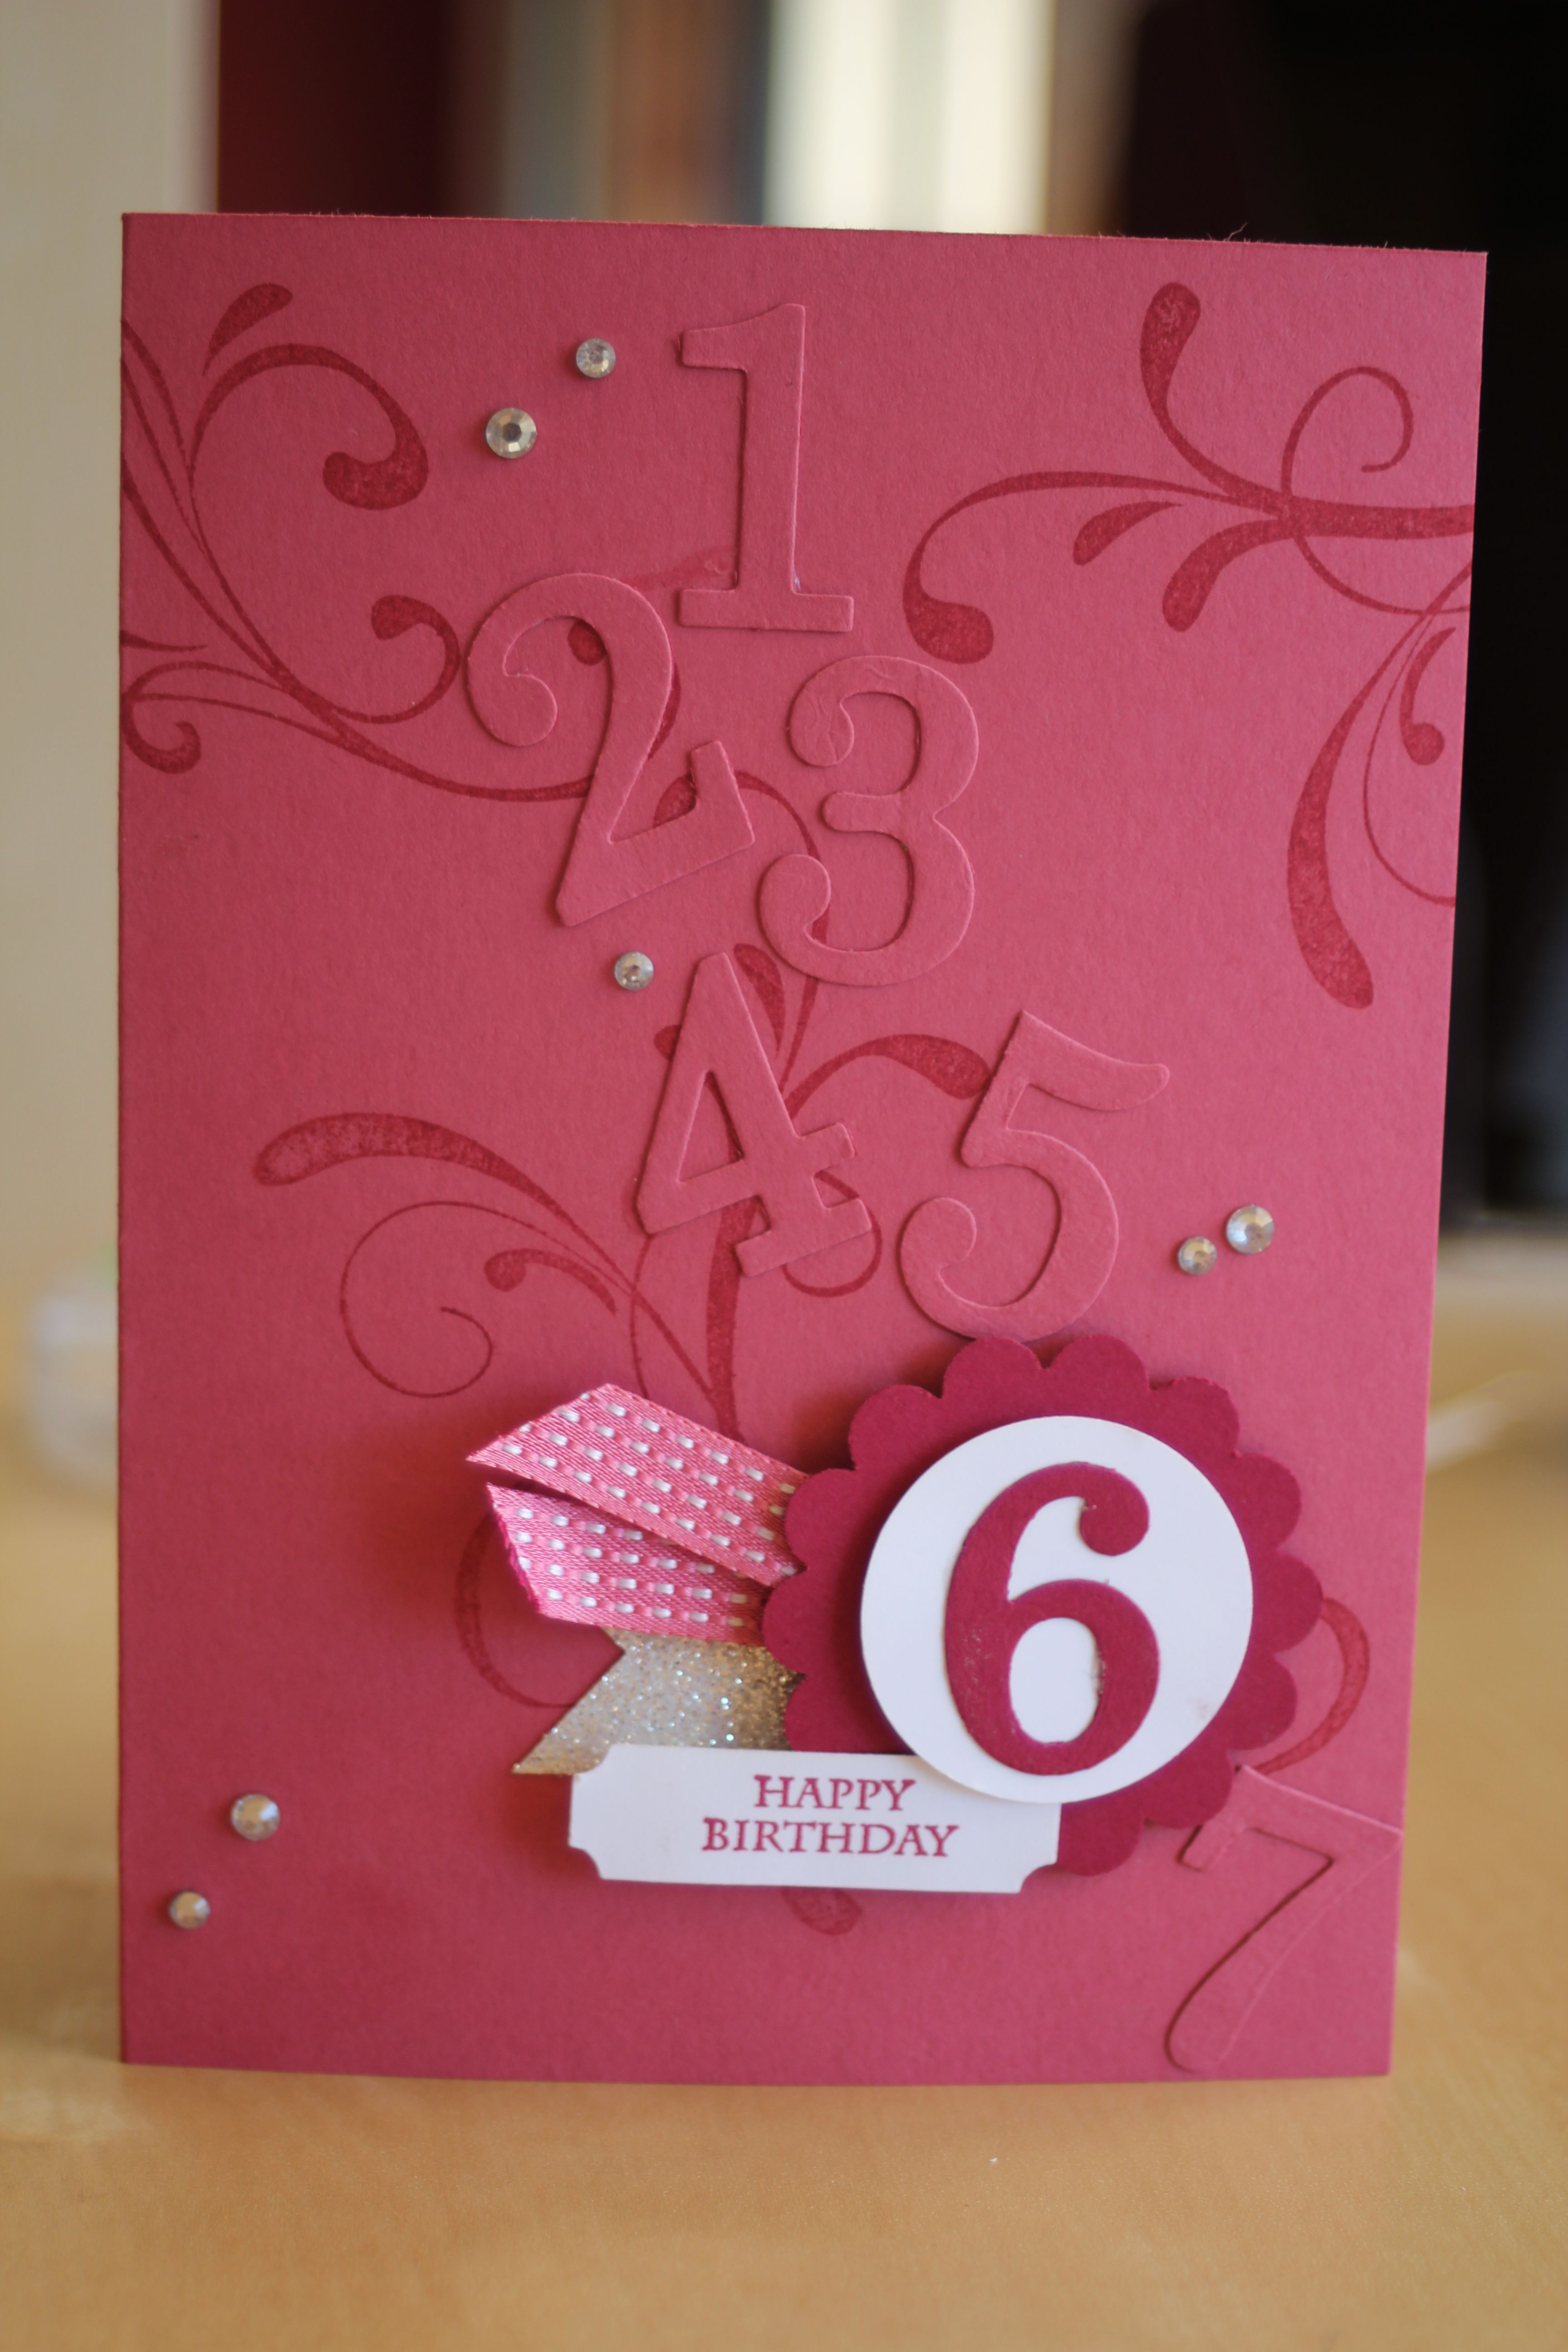 Birthday card for 6yr old girl made using Stampin up